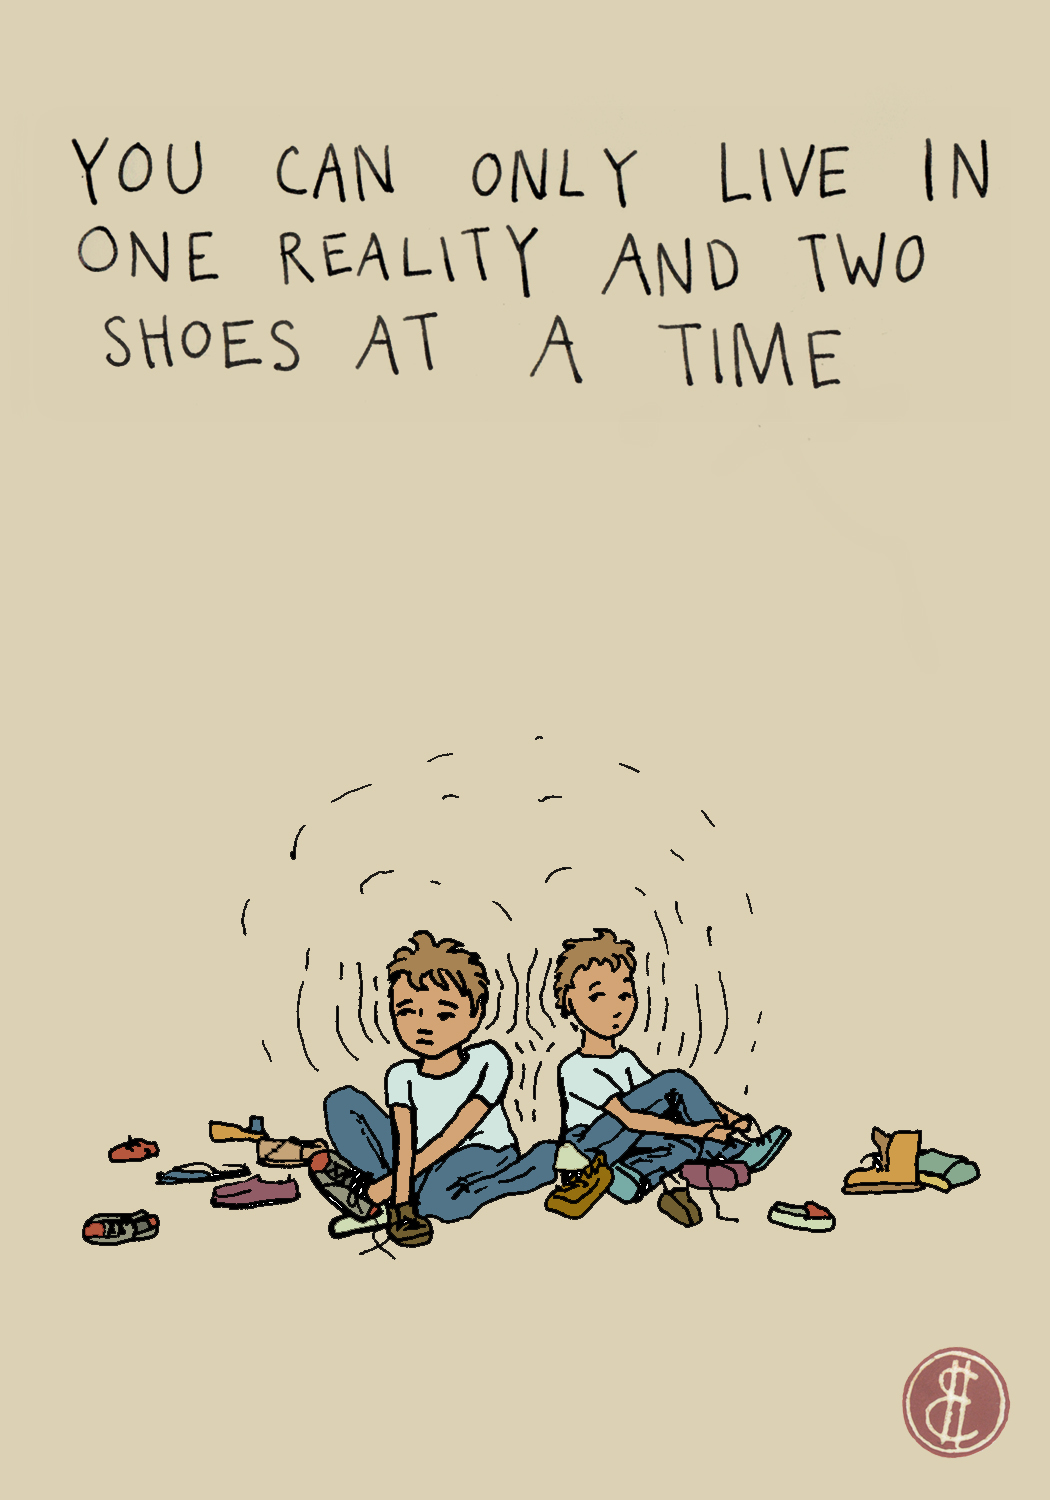 1 reality 2 shoes